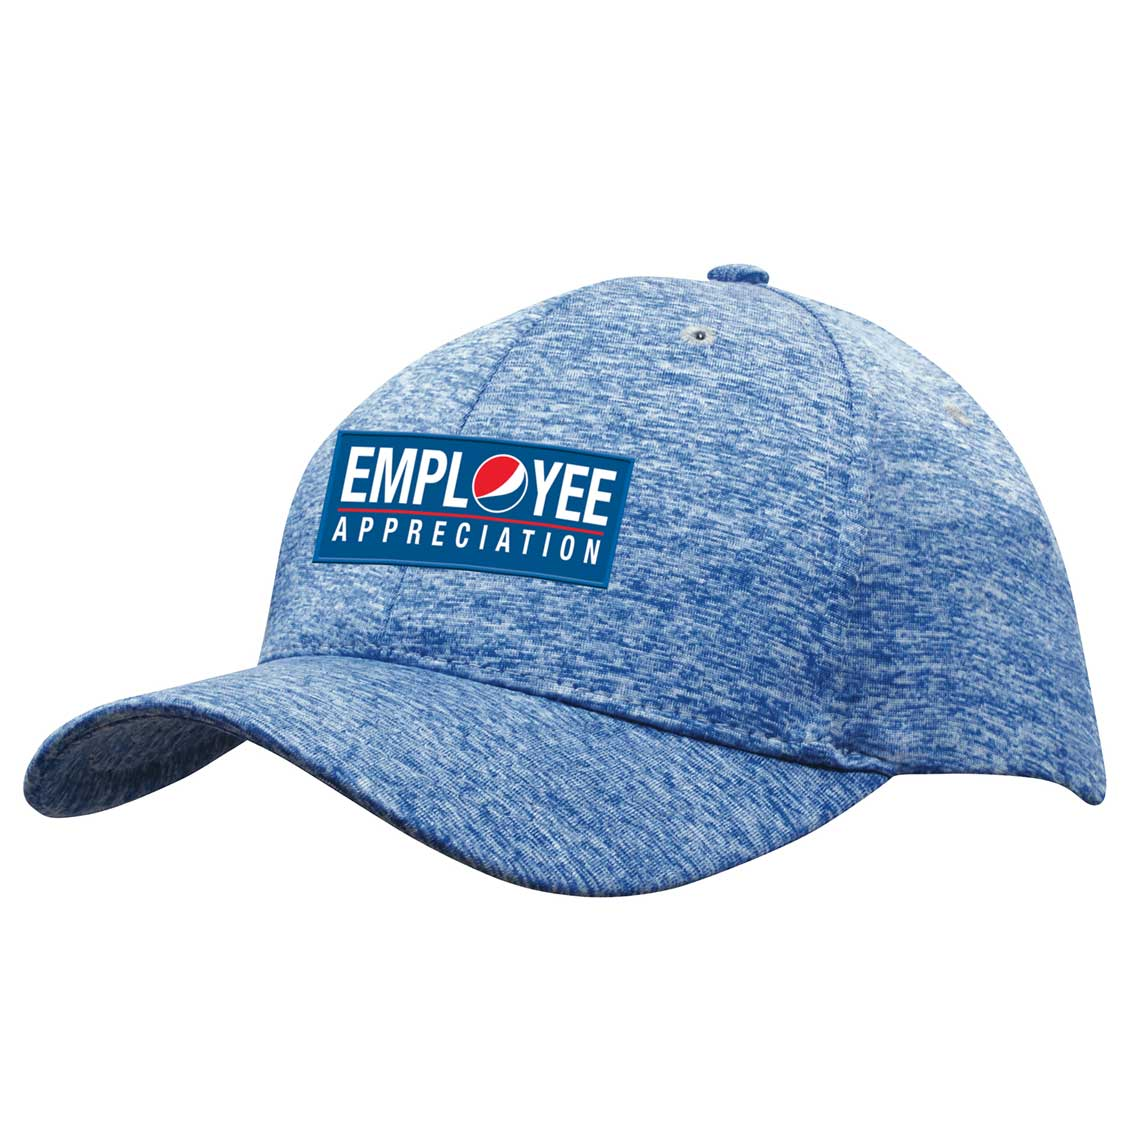 Cationic Sports Jersey Cap - Employee Appreciation